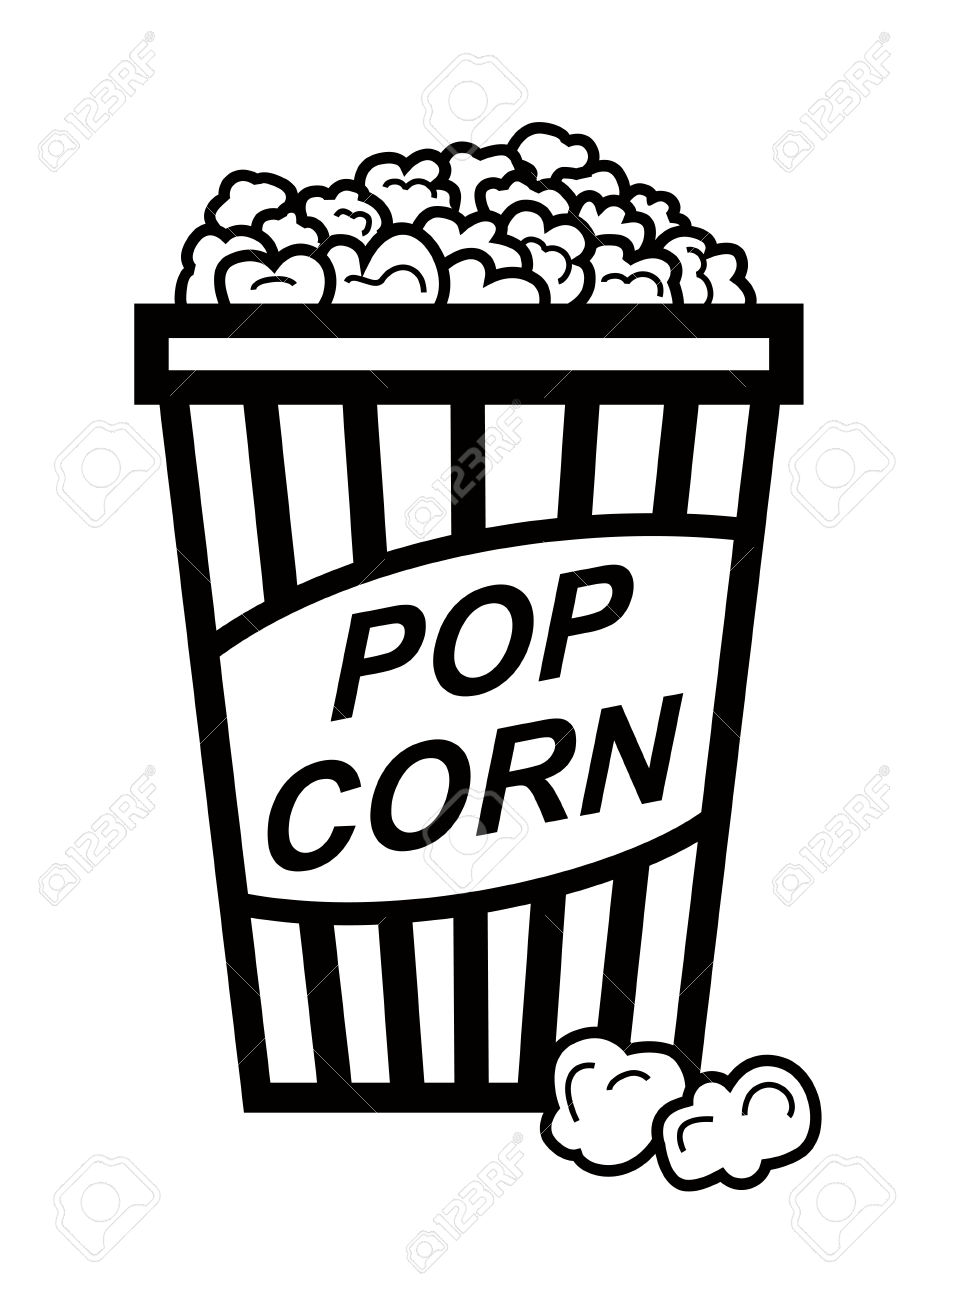 Popcorn clipart black and white Clipart Download Clipart and popcorn